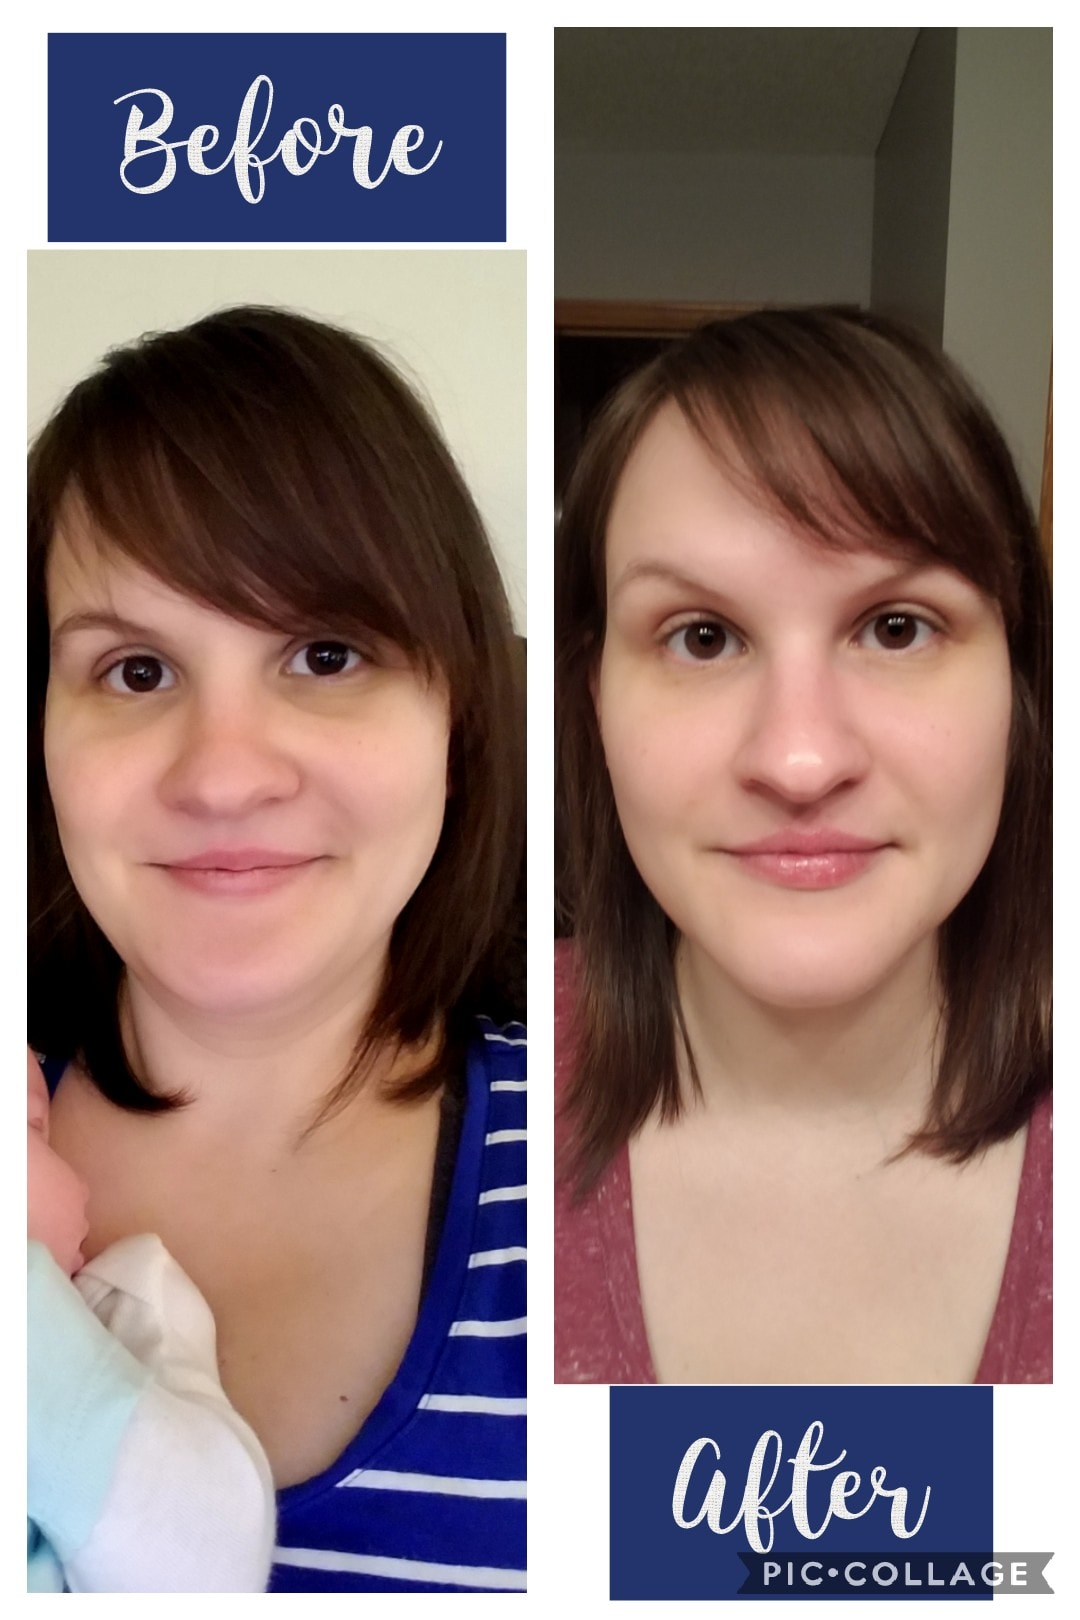 Countermatch Eye Rescue Cream came to my rescue! My dark circles have dramatically reduced!!